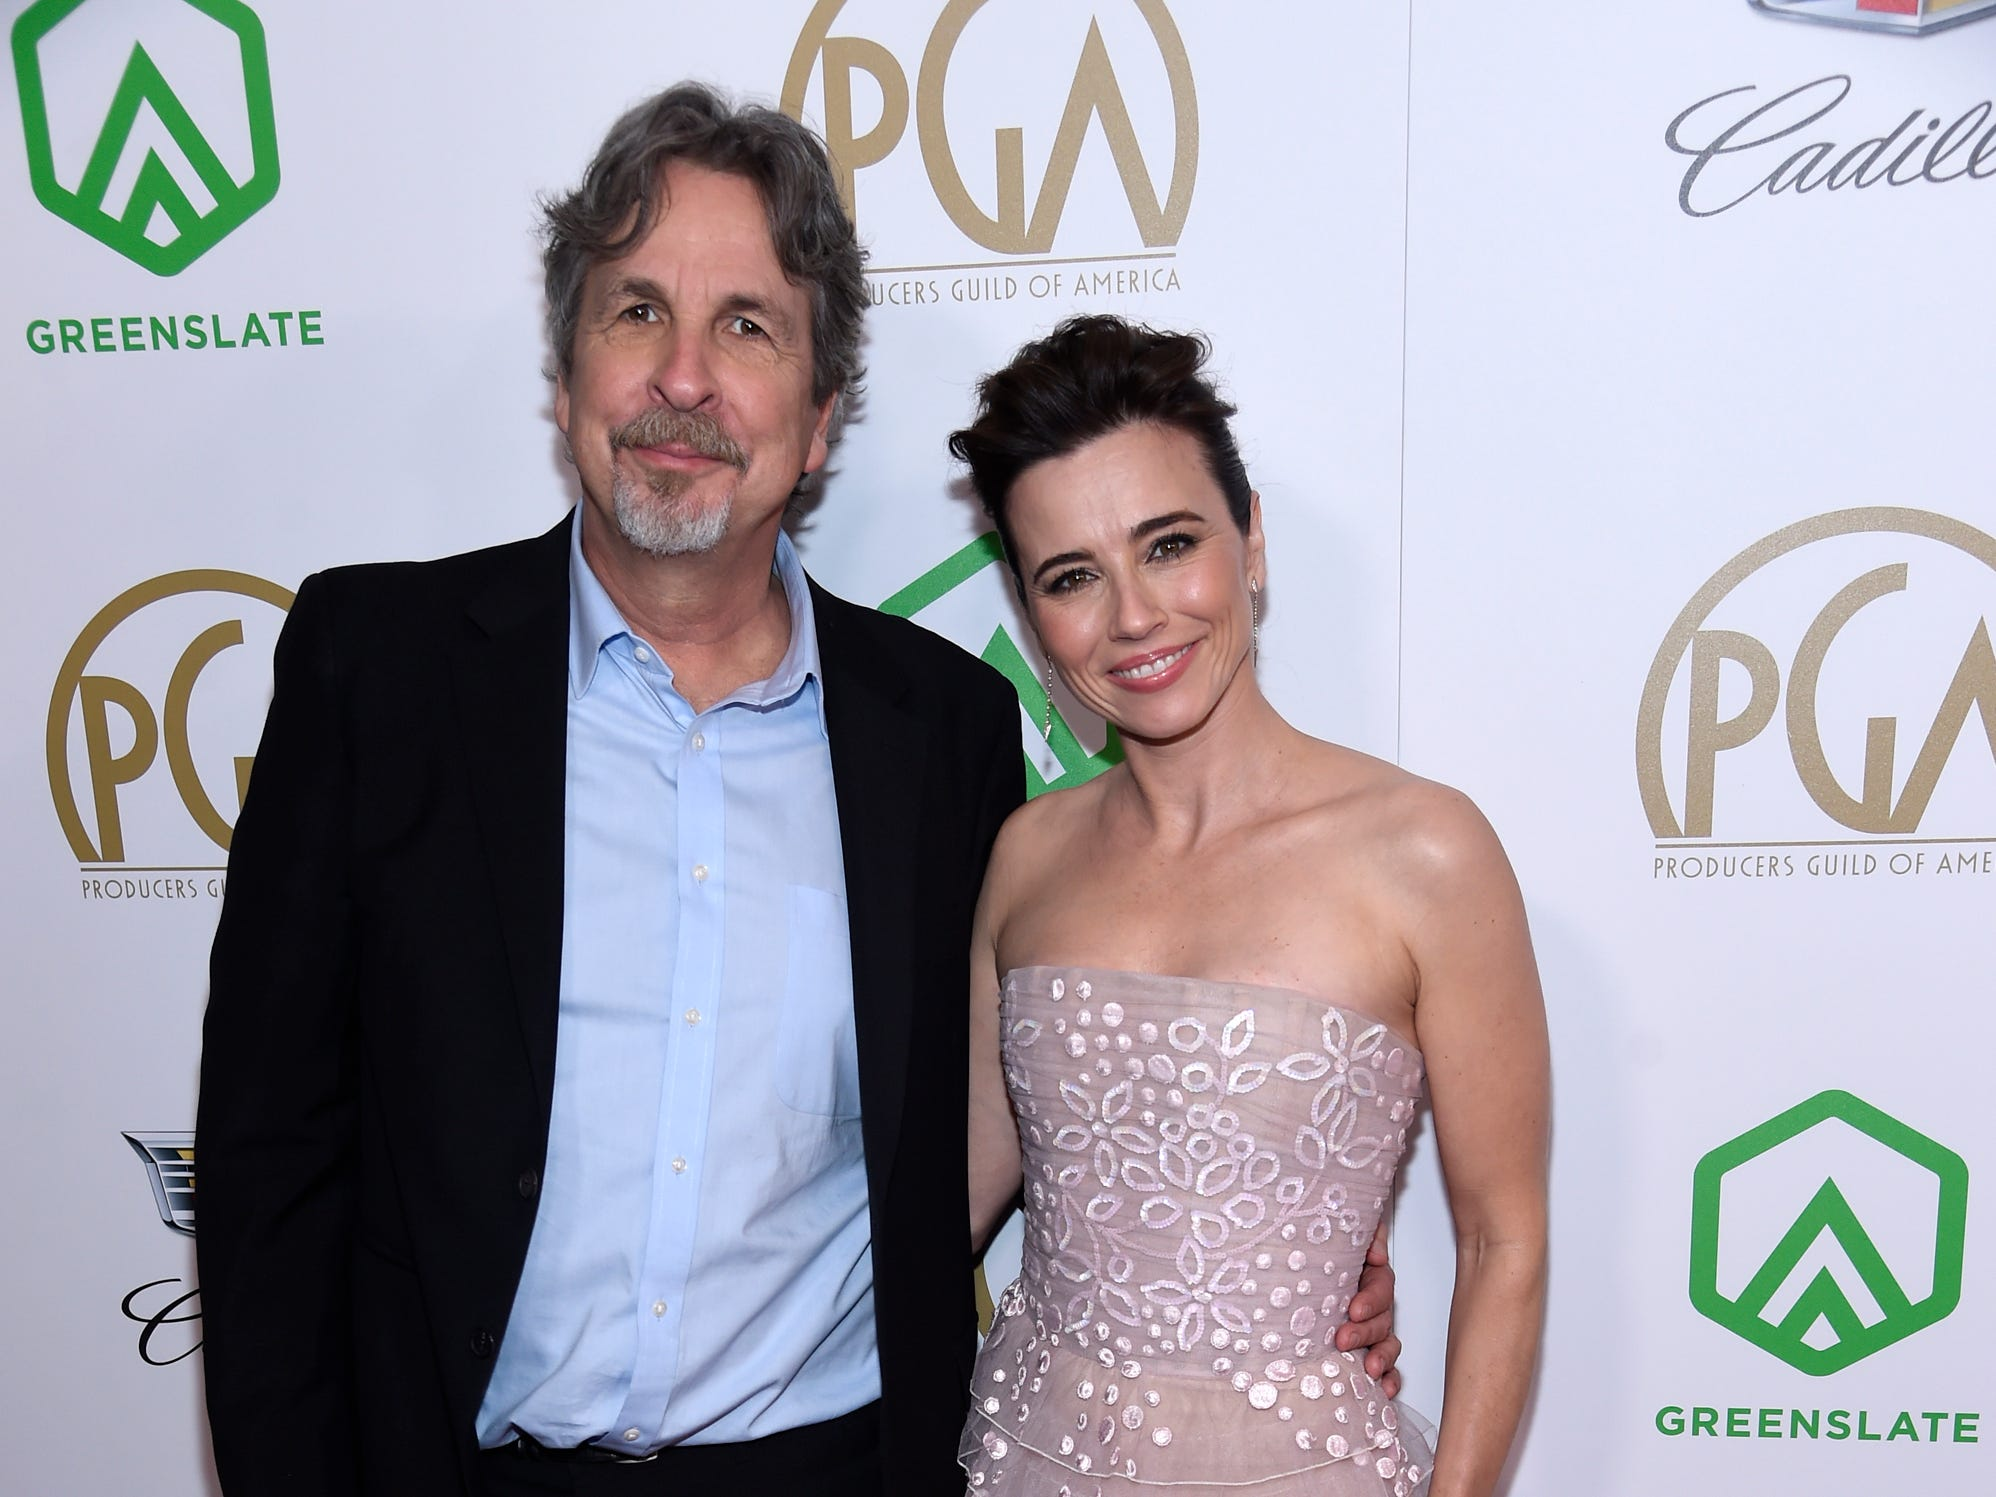 Peter Farrelly, left, and Linda Cardellini arrive at the Producers Guild Awards on Saturday, Jan. 19, 2019, at the Beverly Hilton Hotel in Beverly Hills, Calif. (Photo by Chris Pizzello/Invision/AP) ORG XMIT: CAPM125